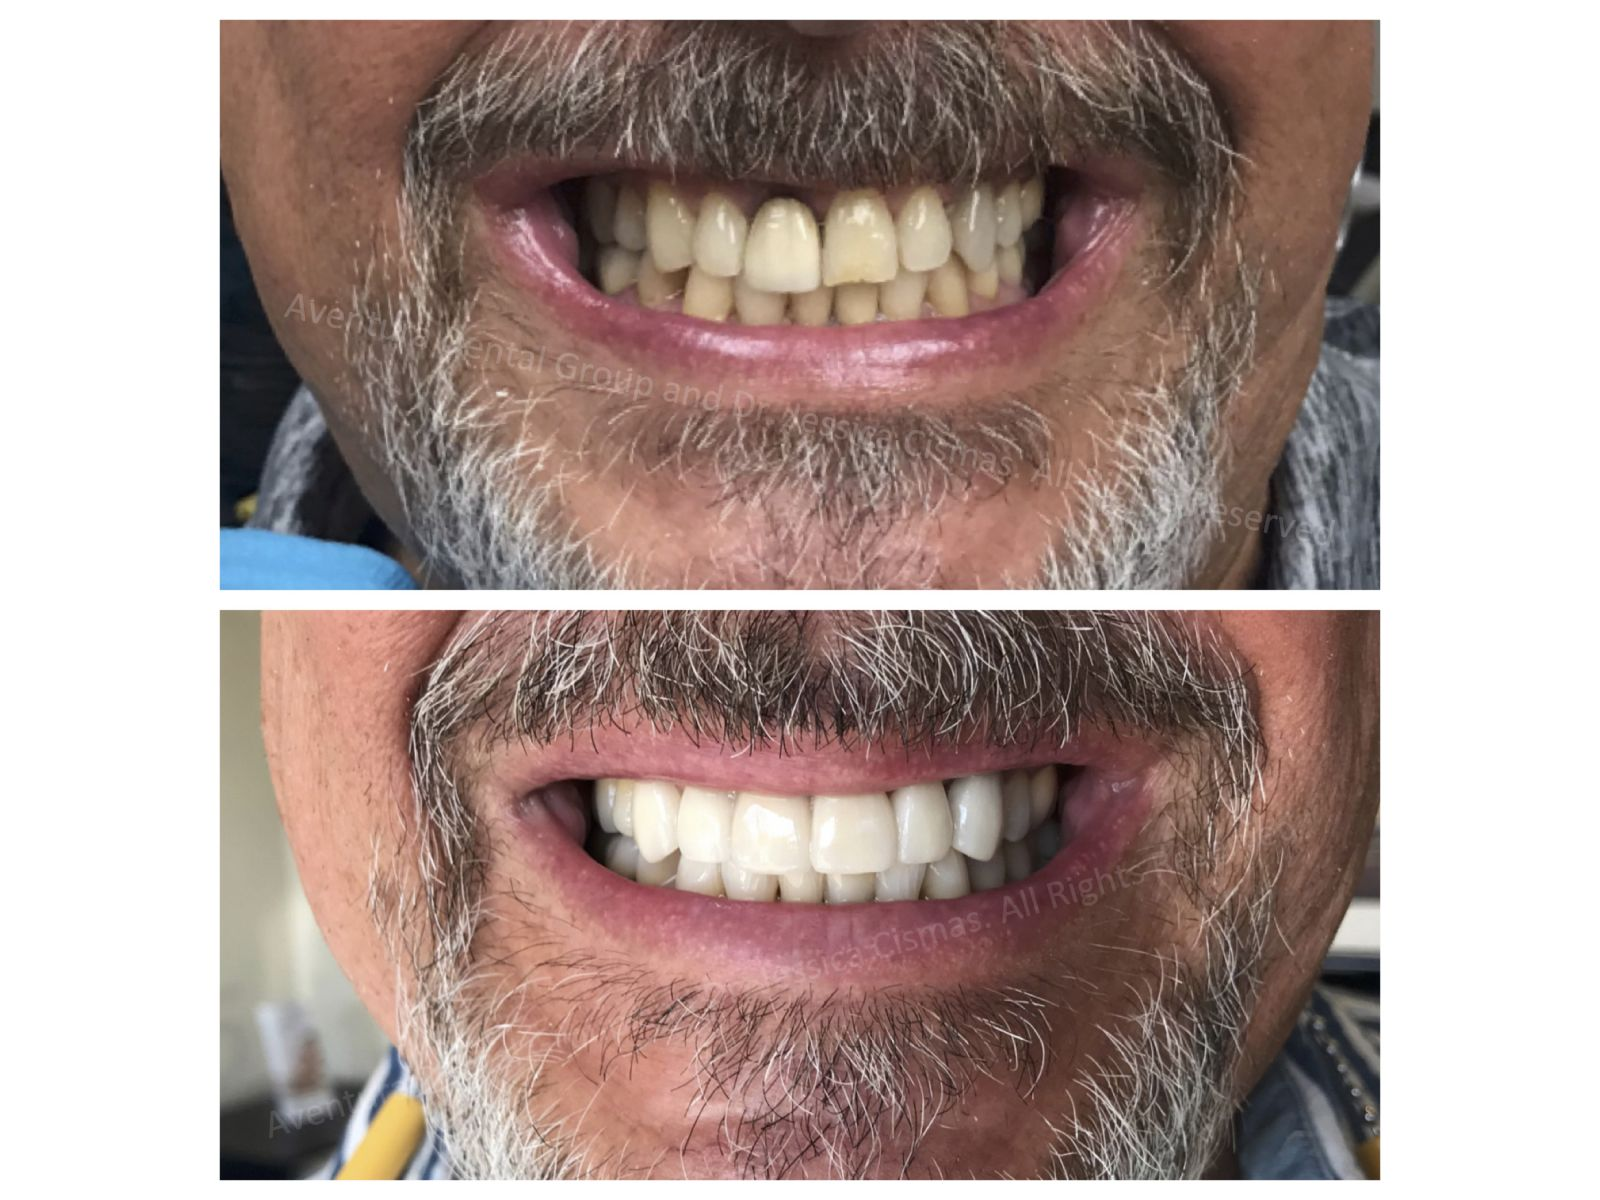 Dr. Jessica Cismas from Aventura Dental Group just completed another full mouth porcelain veneer case sucessfully. At Aventura Dental Group we pride ourselves with building amazing long lasting smiles for lifetime. If you need a second opinion consultation please DM us @aventuradentalgroup on Instagram.